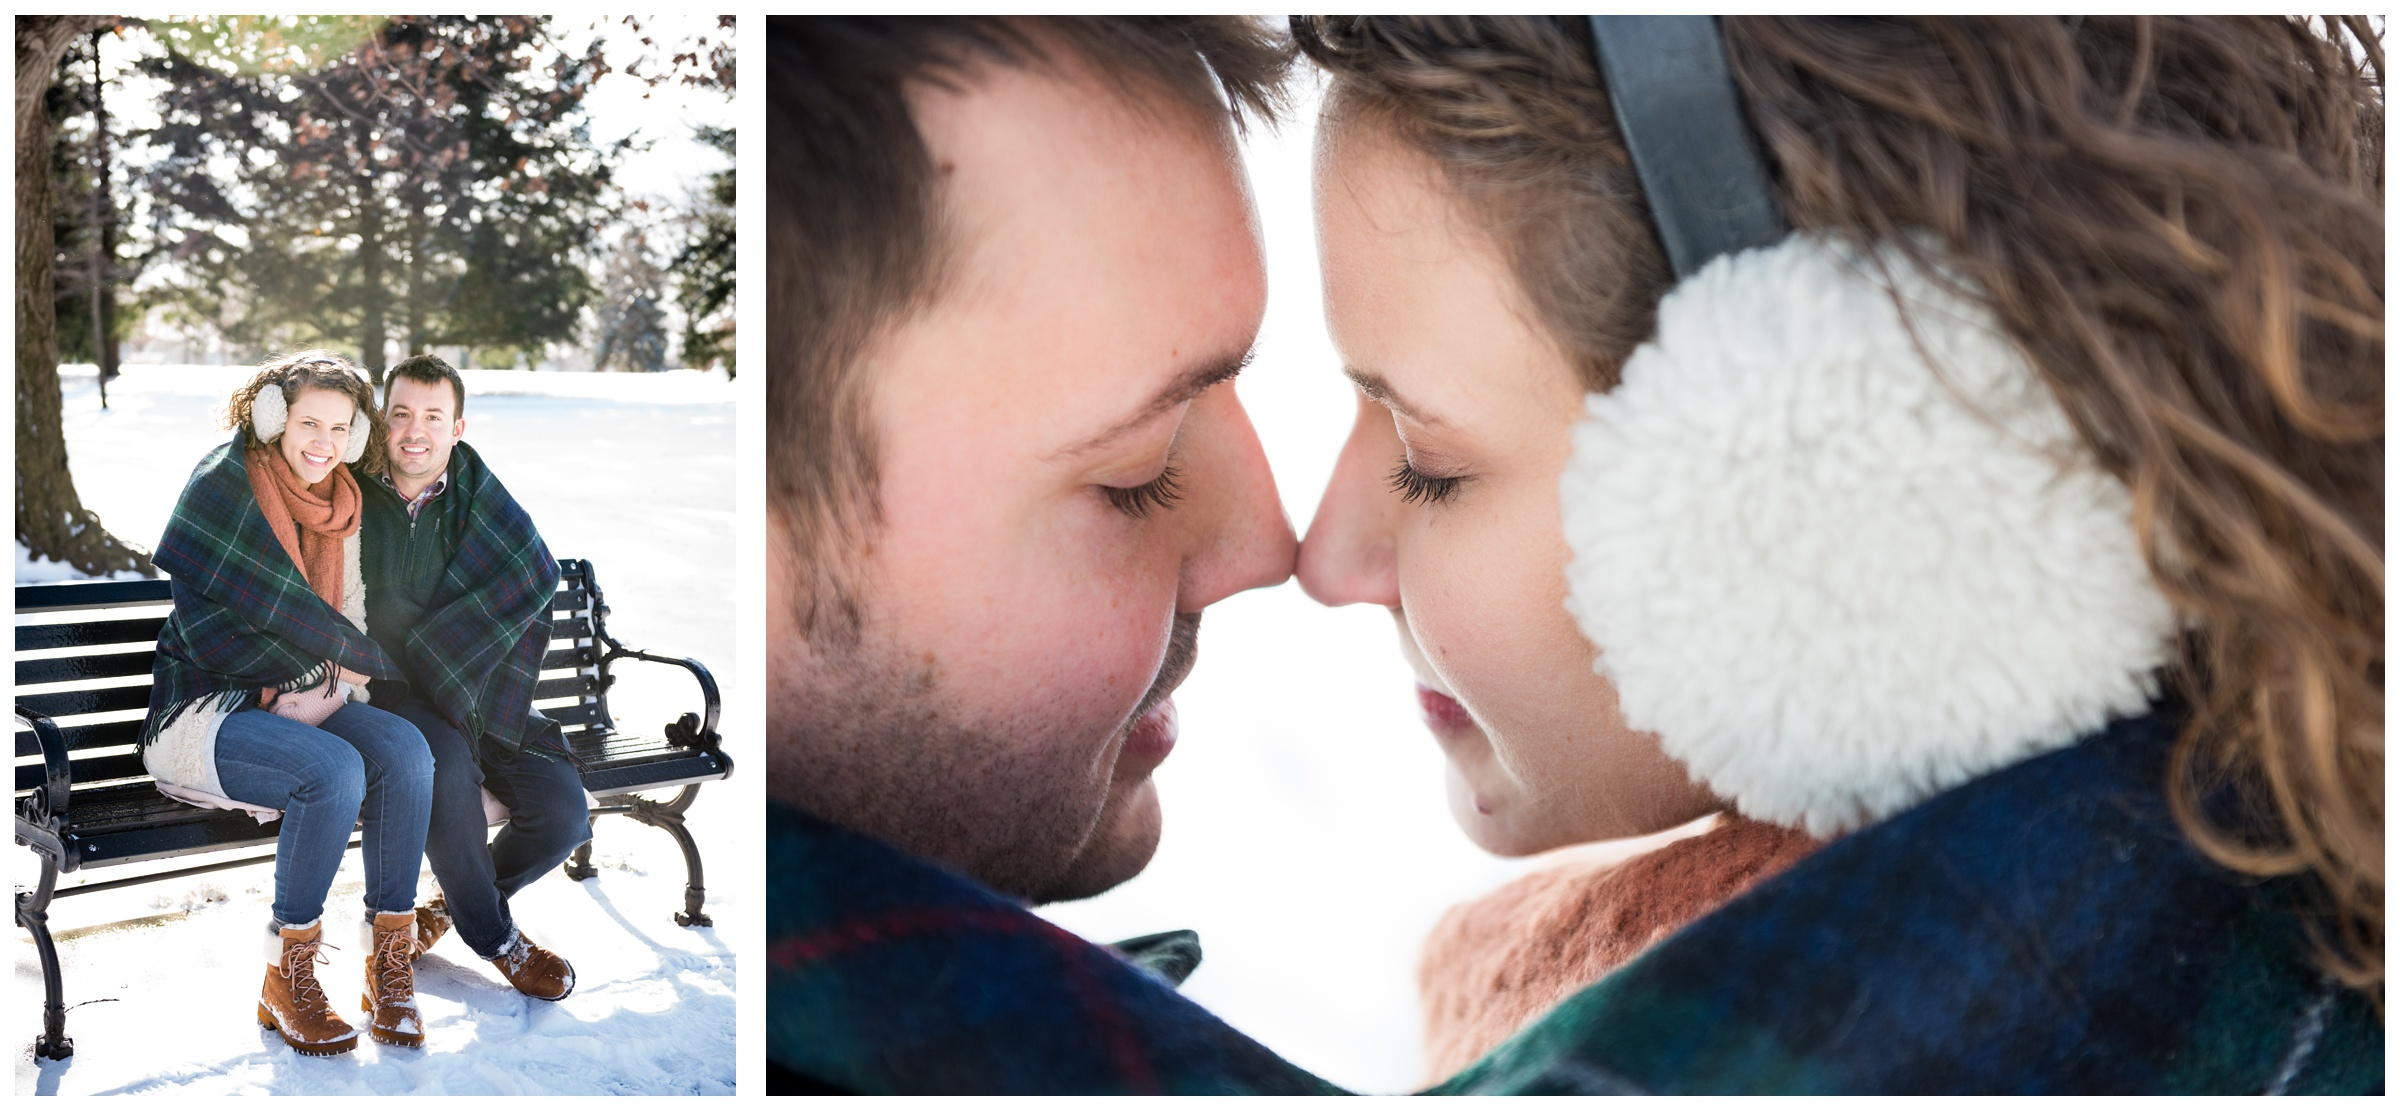 snowy winter engagement photos at Goodale Park in Columbus, Ohio